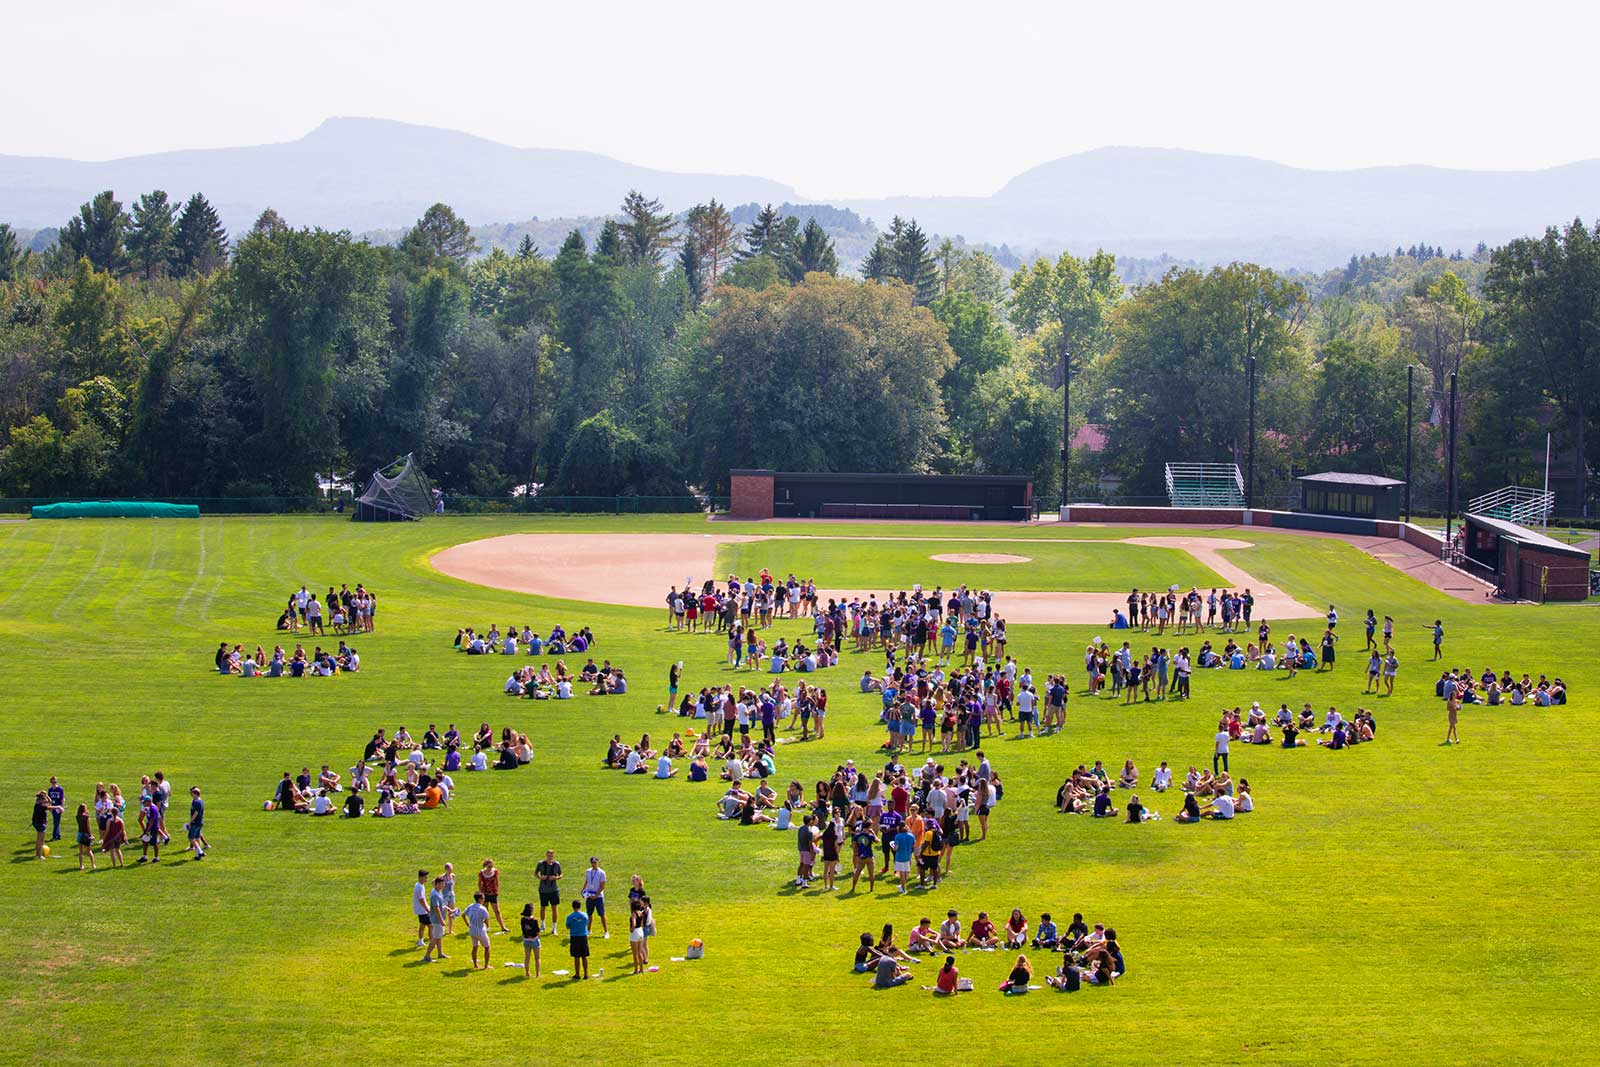 New students gathered in squads on Memorial Field.